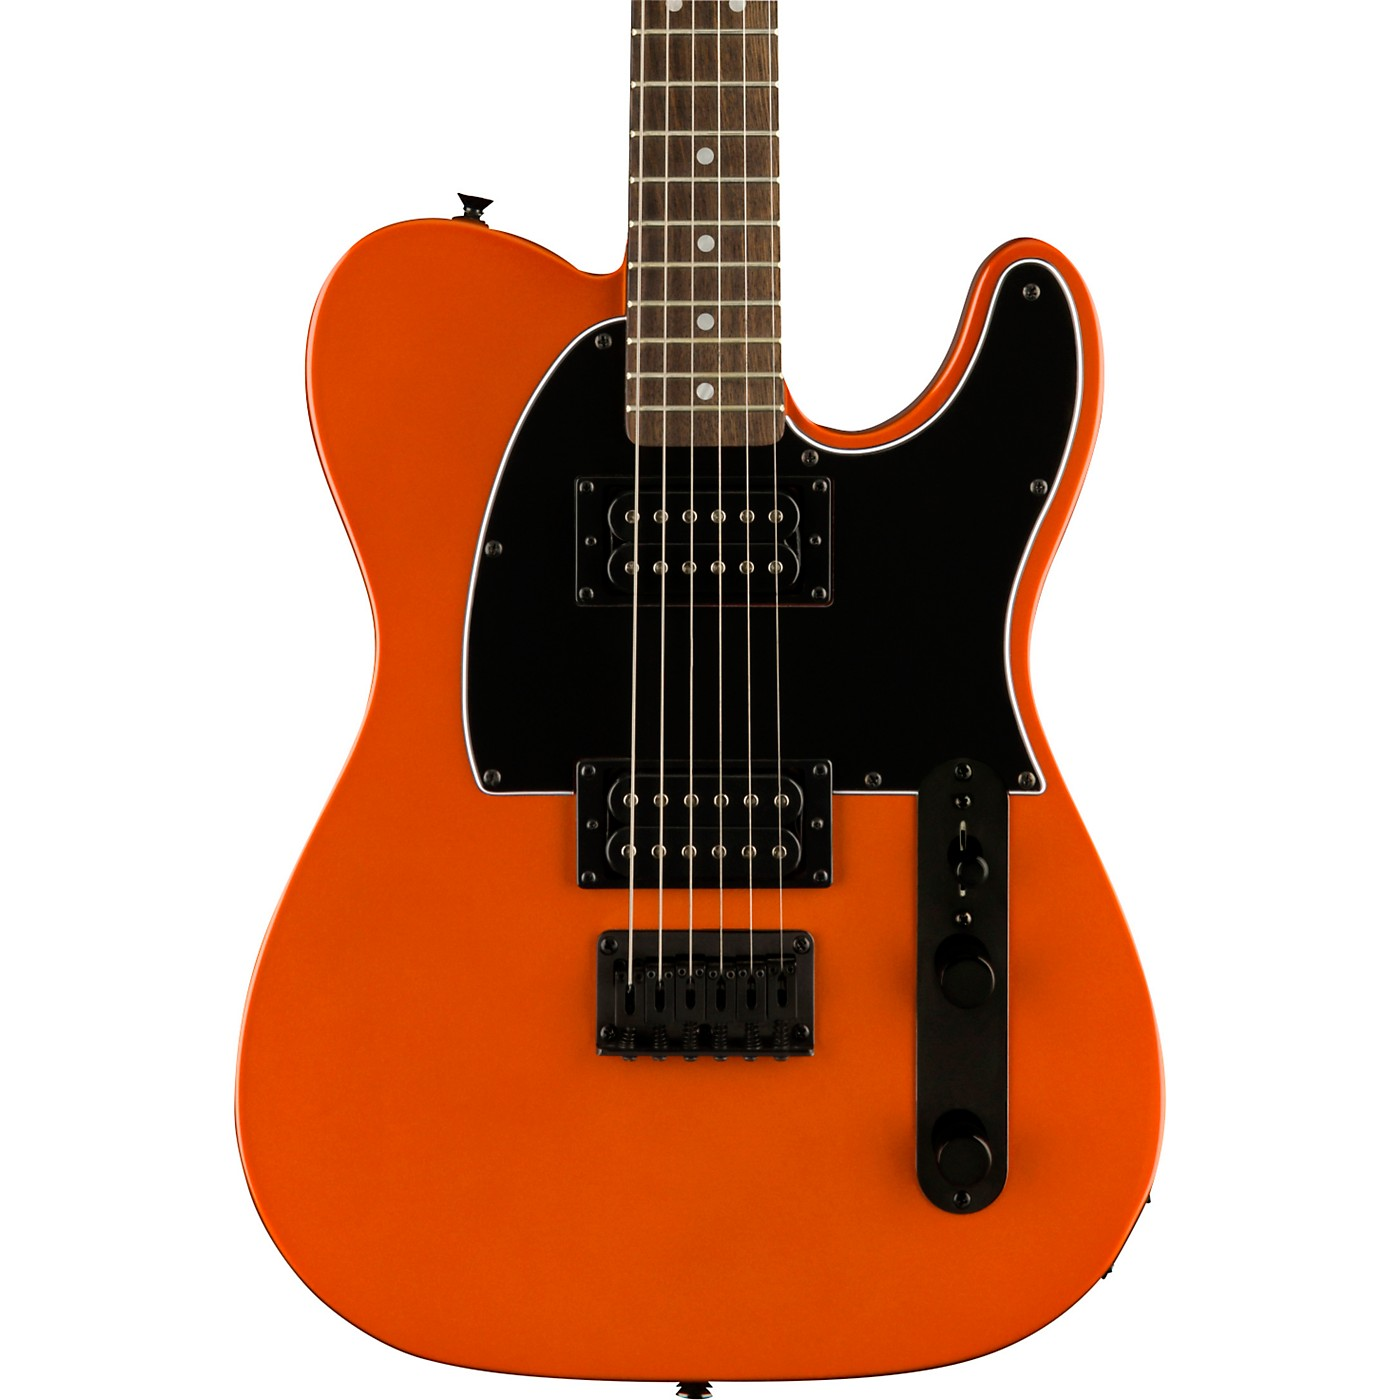 Squier Affinity Telecaster HH Electric Guitar with Matching Headstock thumbnail